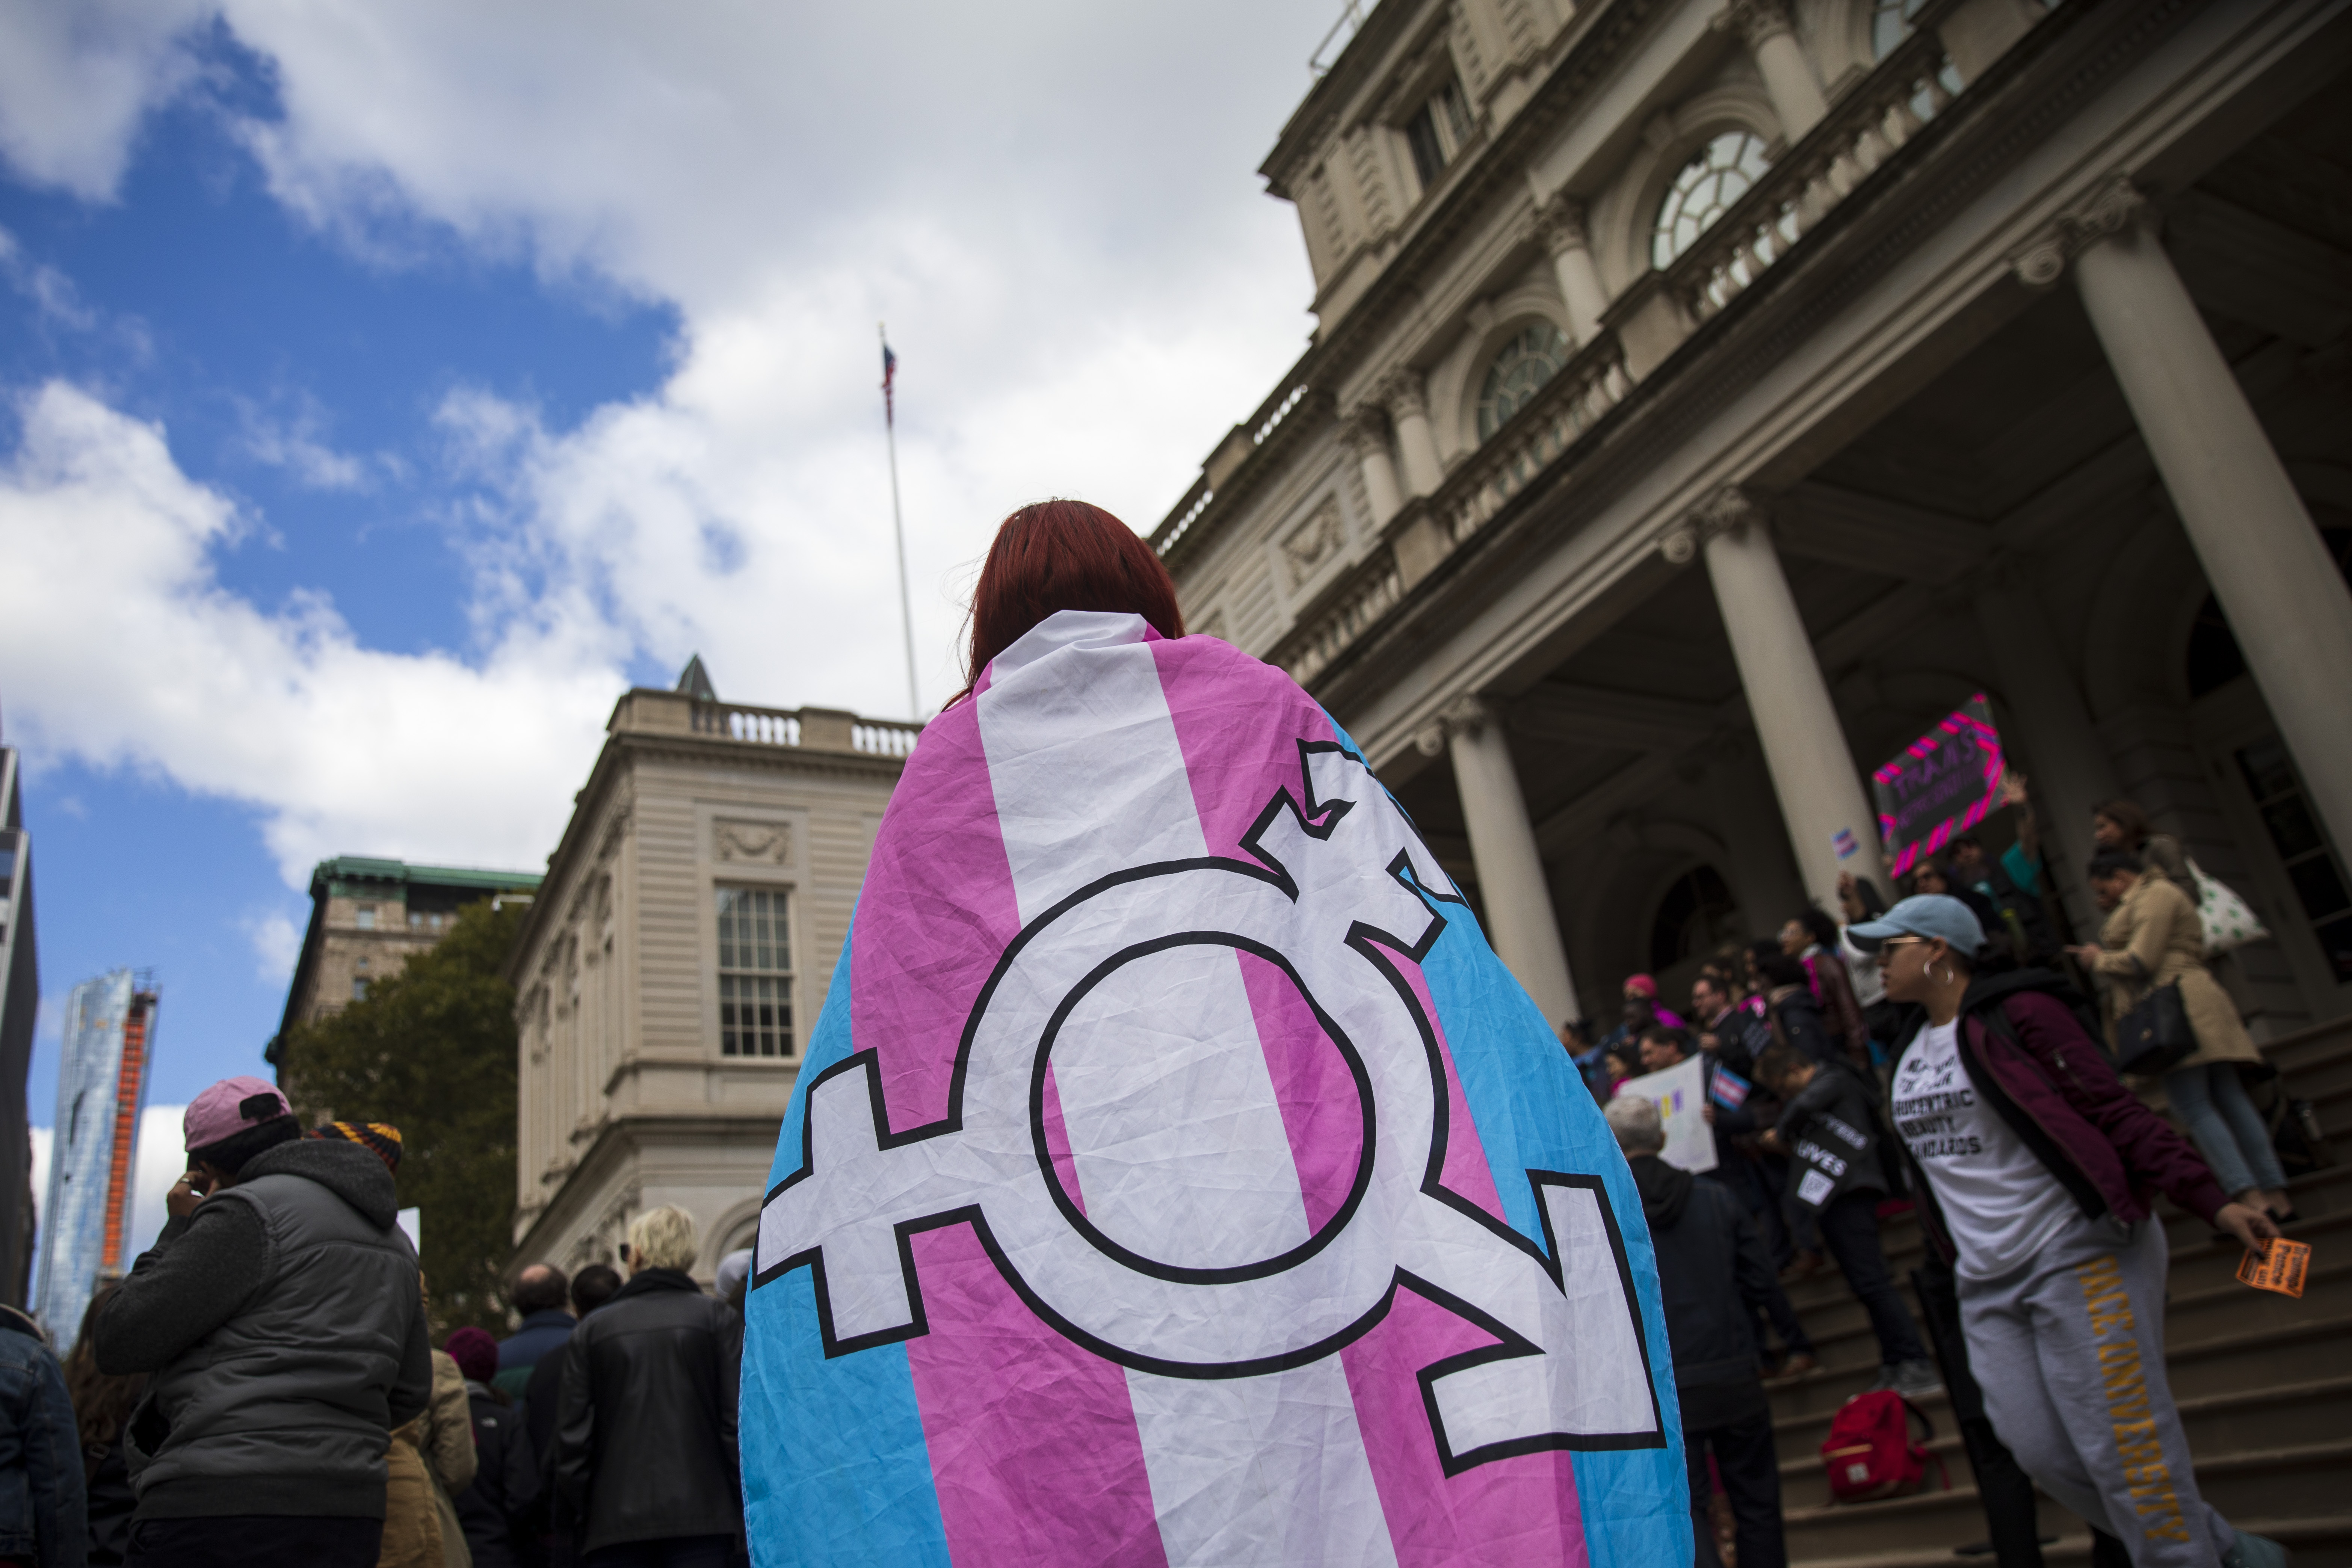 A person draped in a transgender flag. (Drew Angerer/Getty)